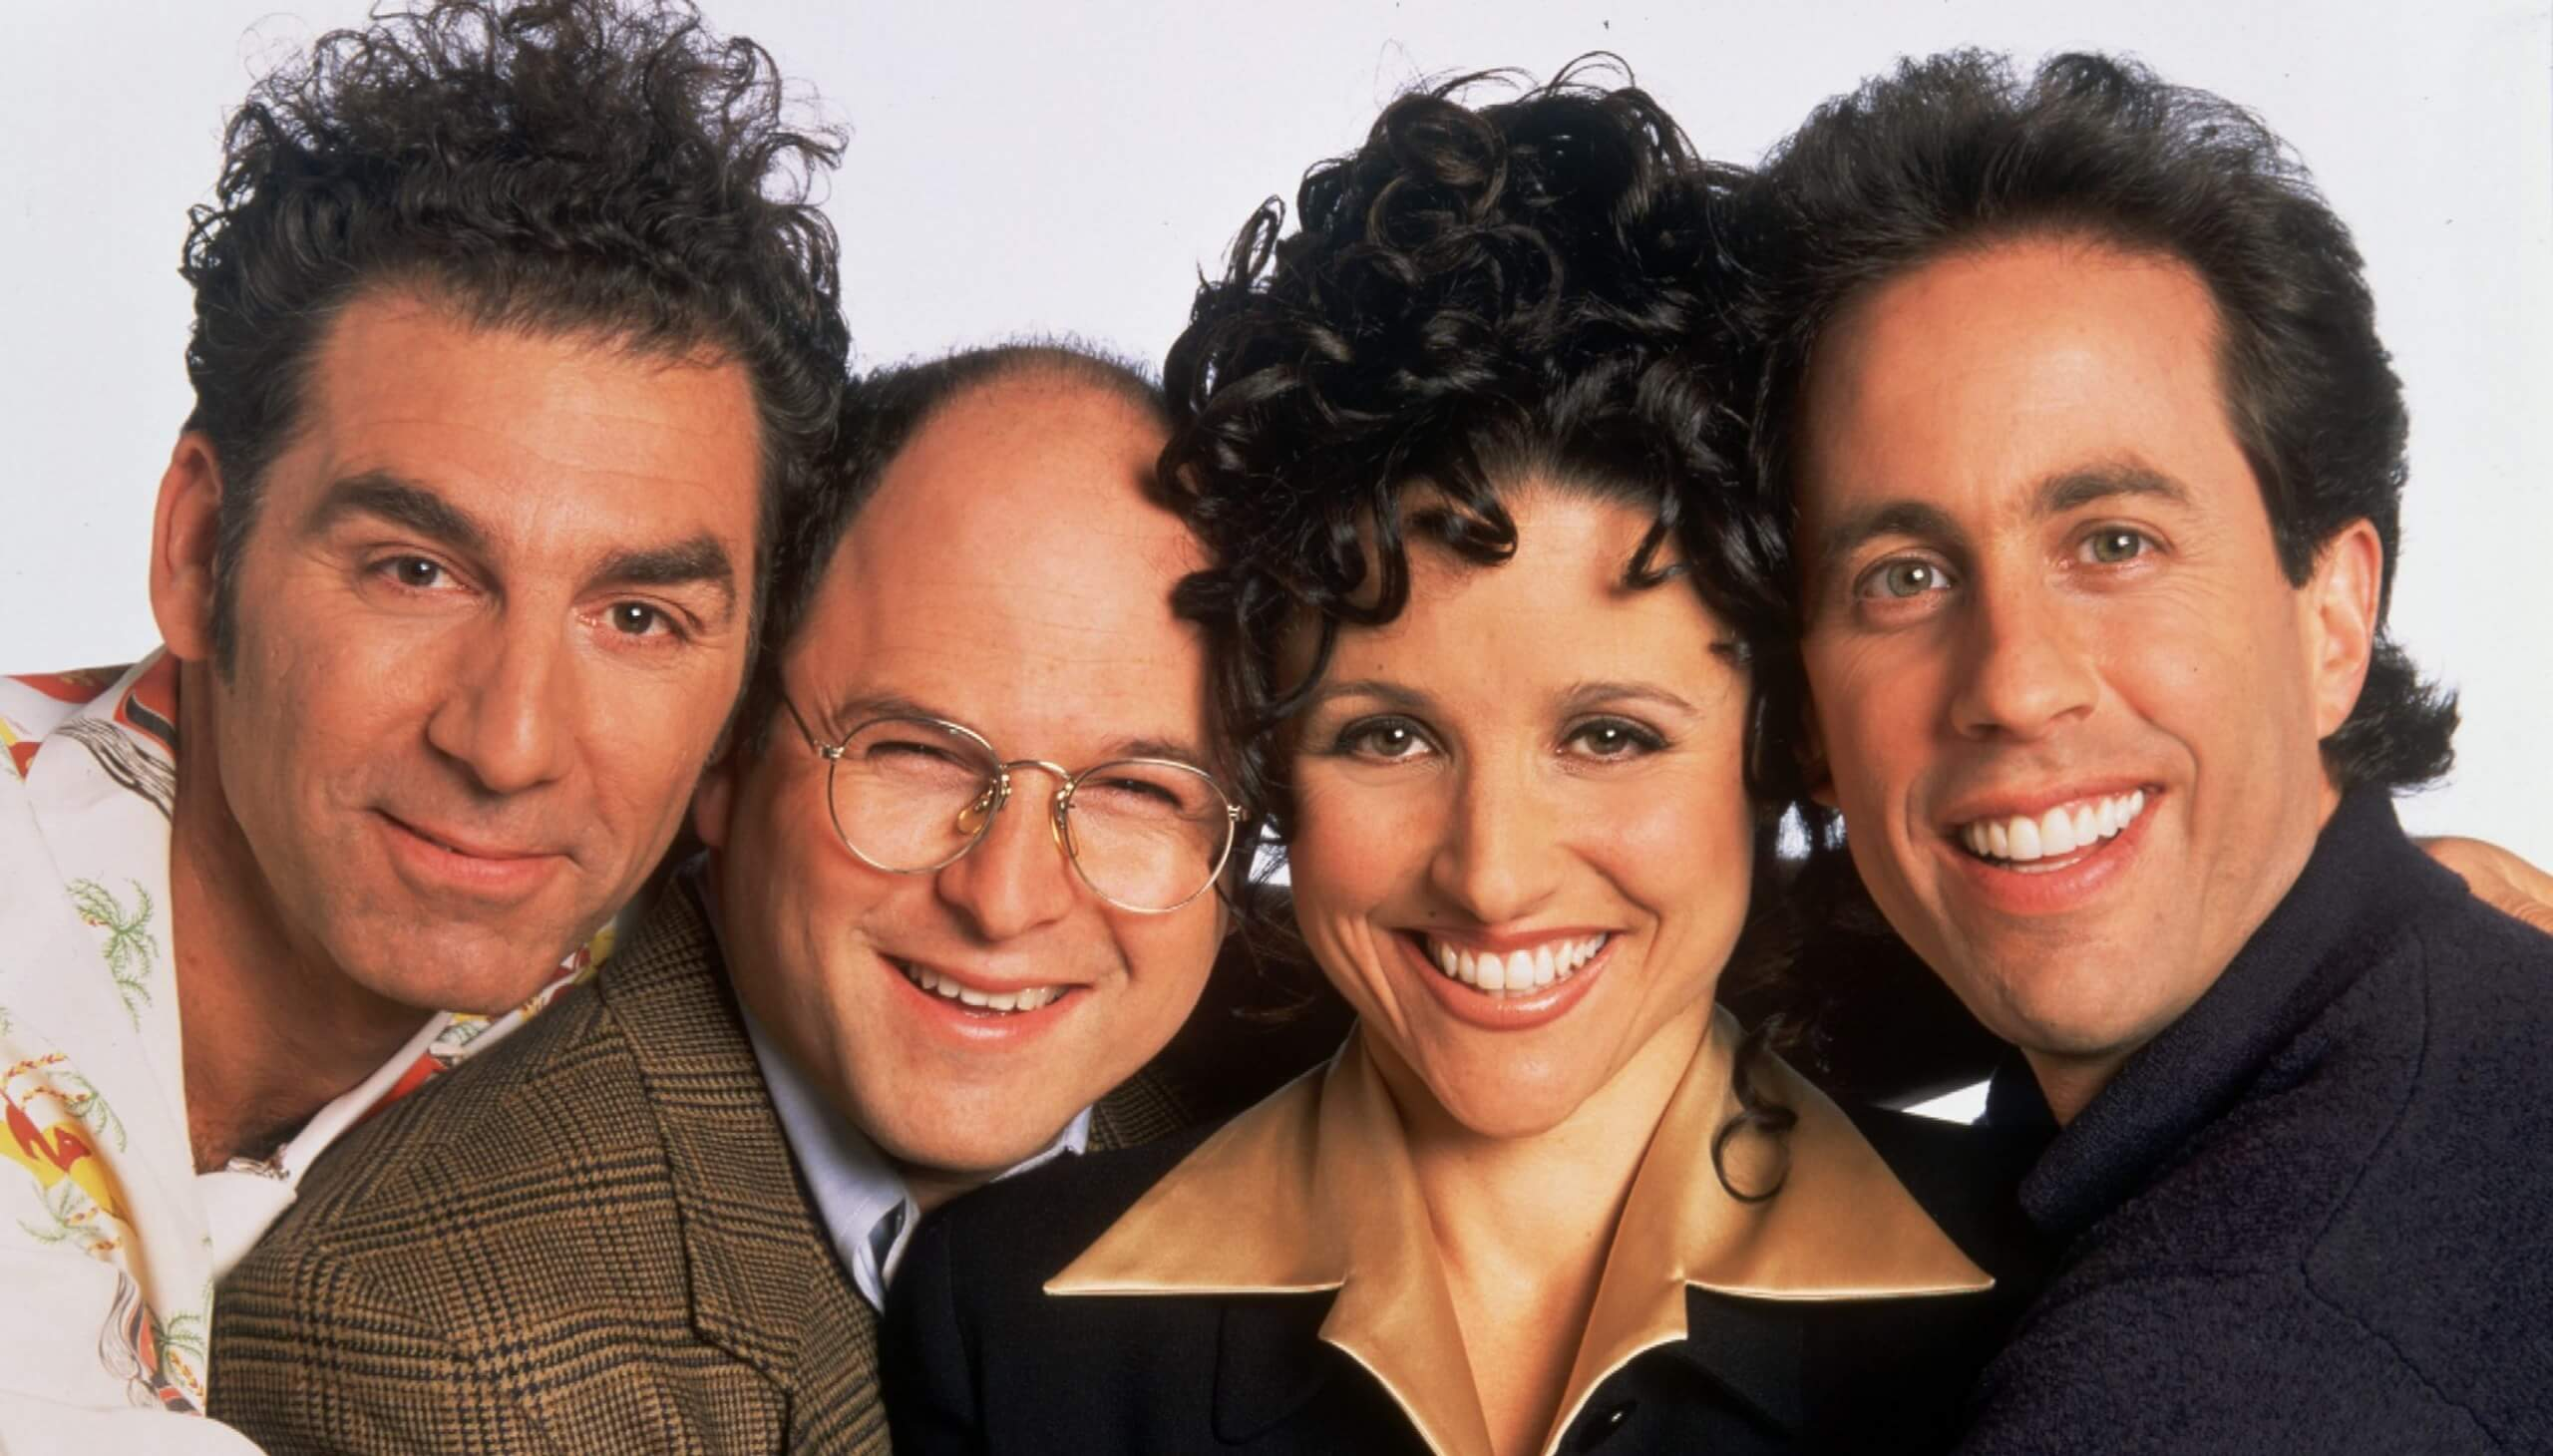 'Seinfeld' is coming to Netflix!